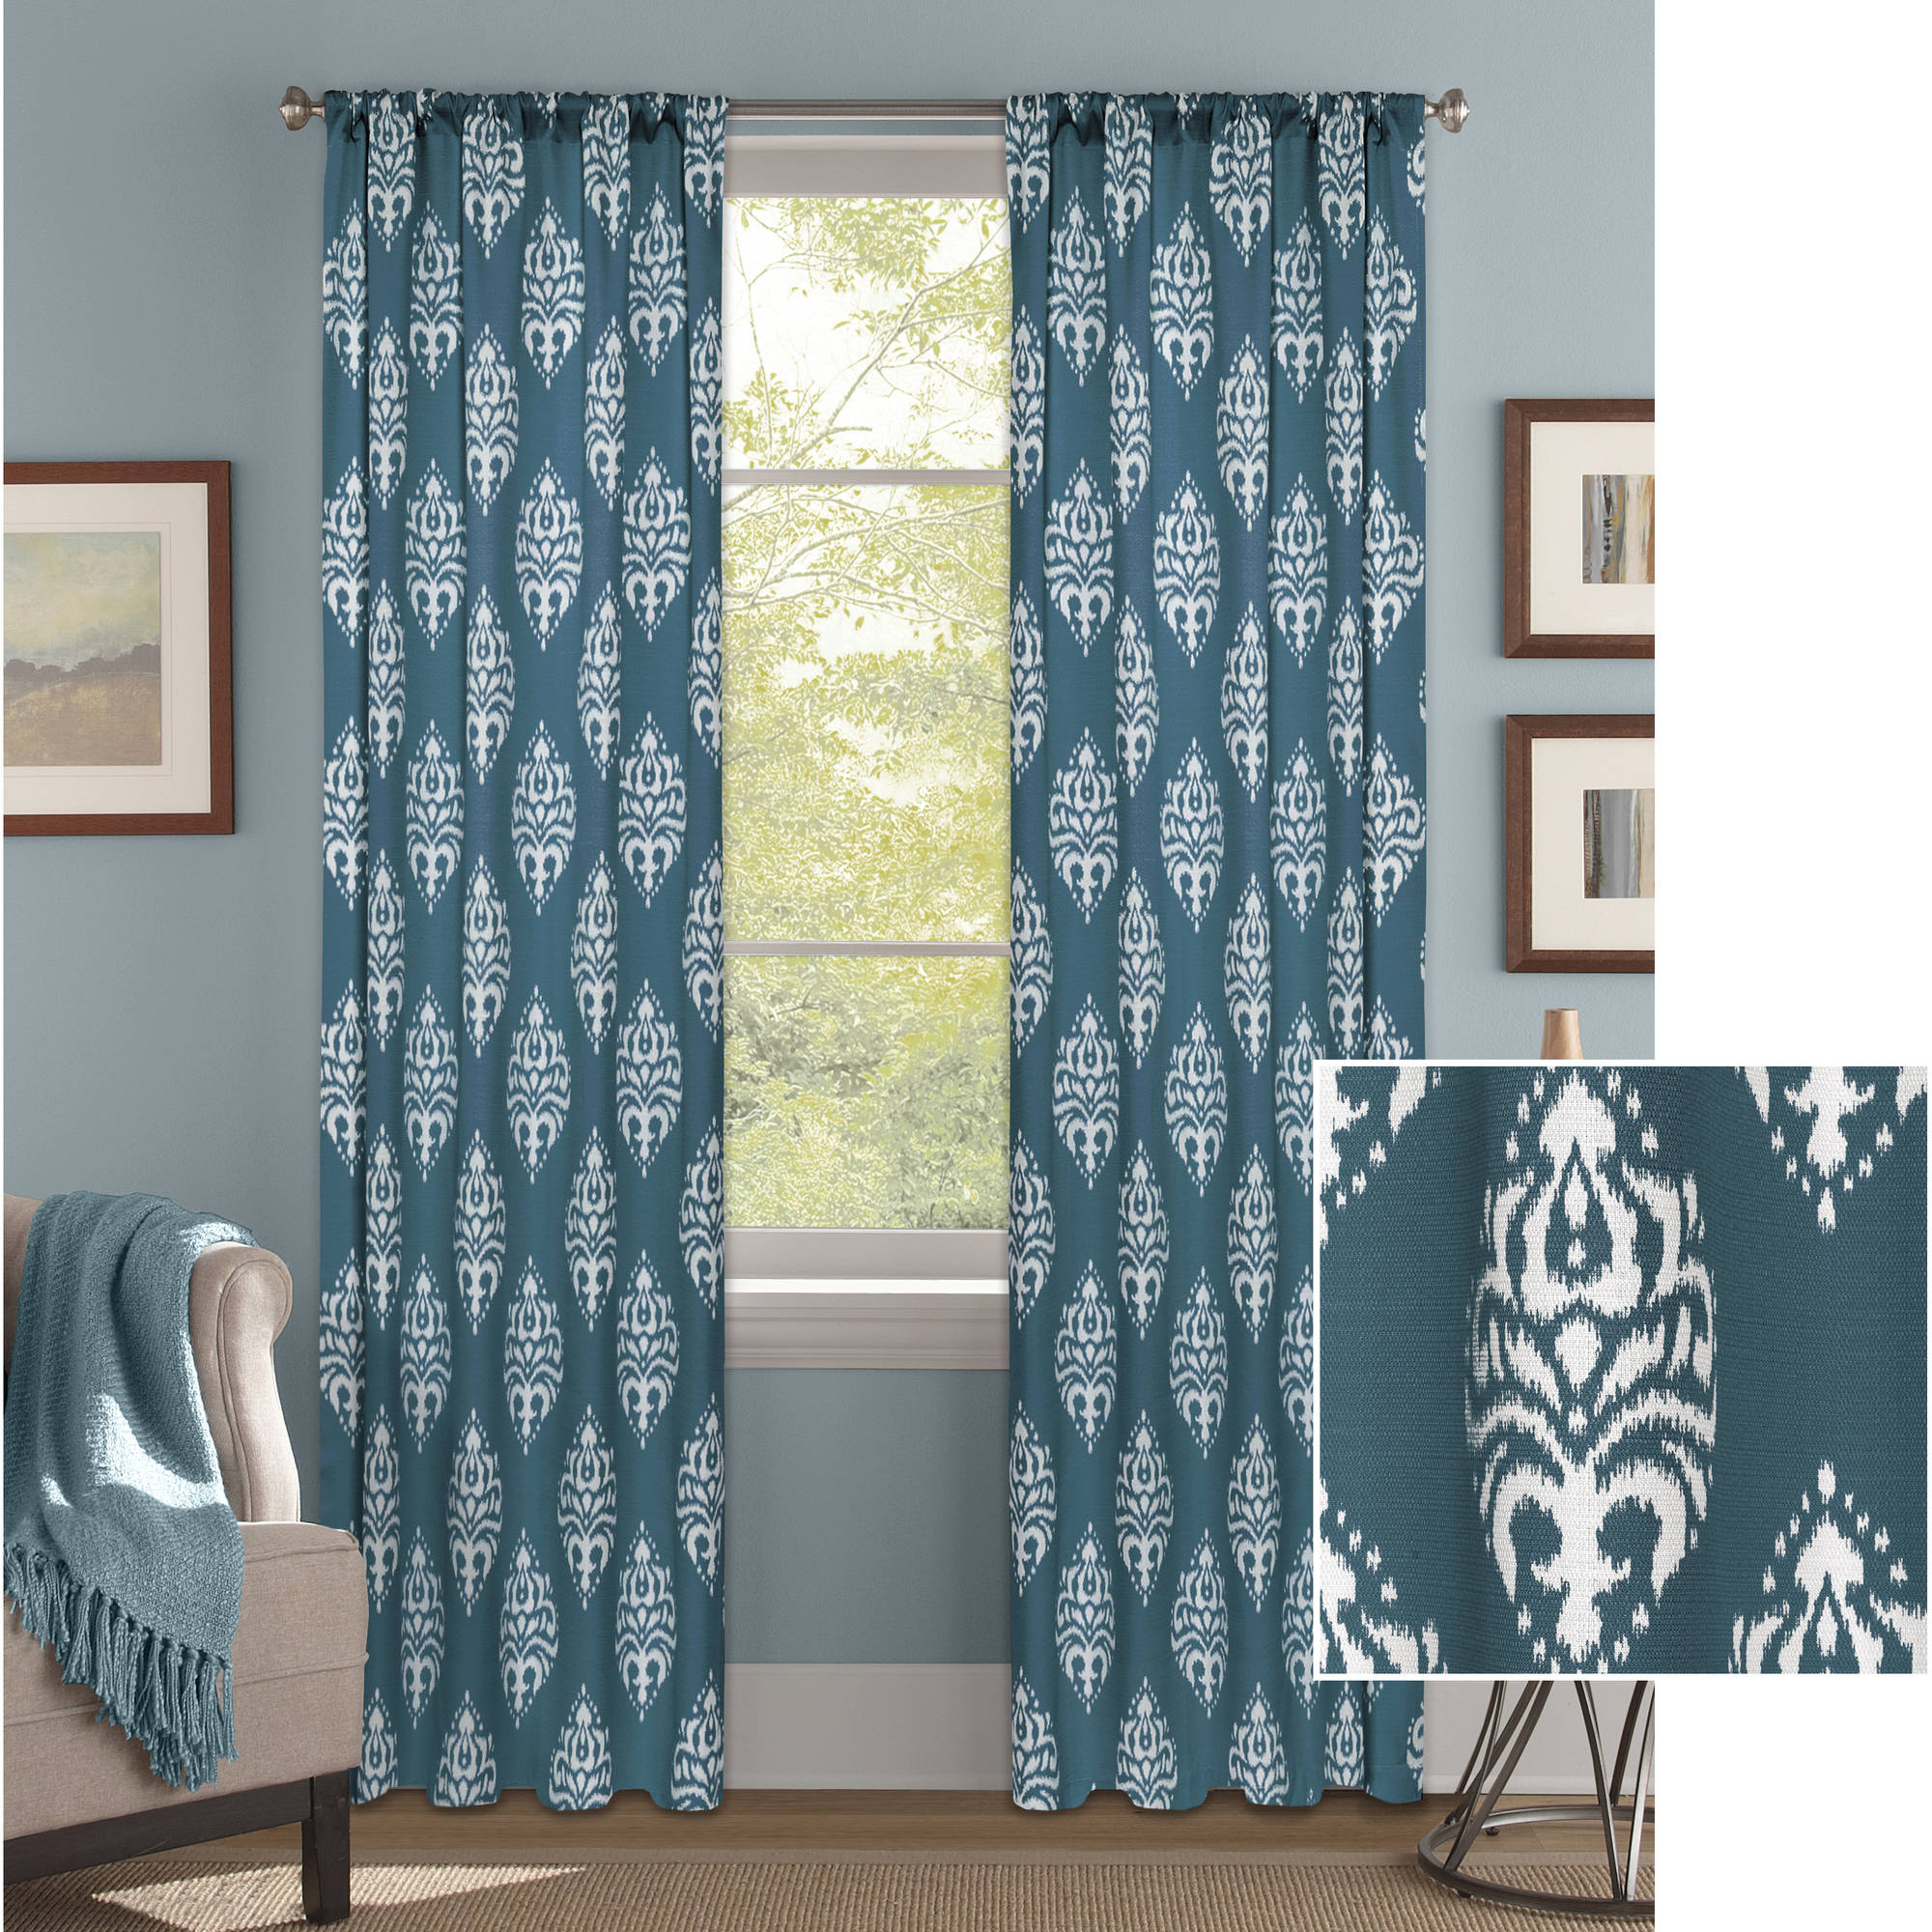 Better Homes and Gardens Traditional Damask Curtain Panel